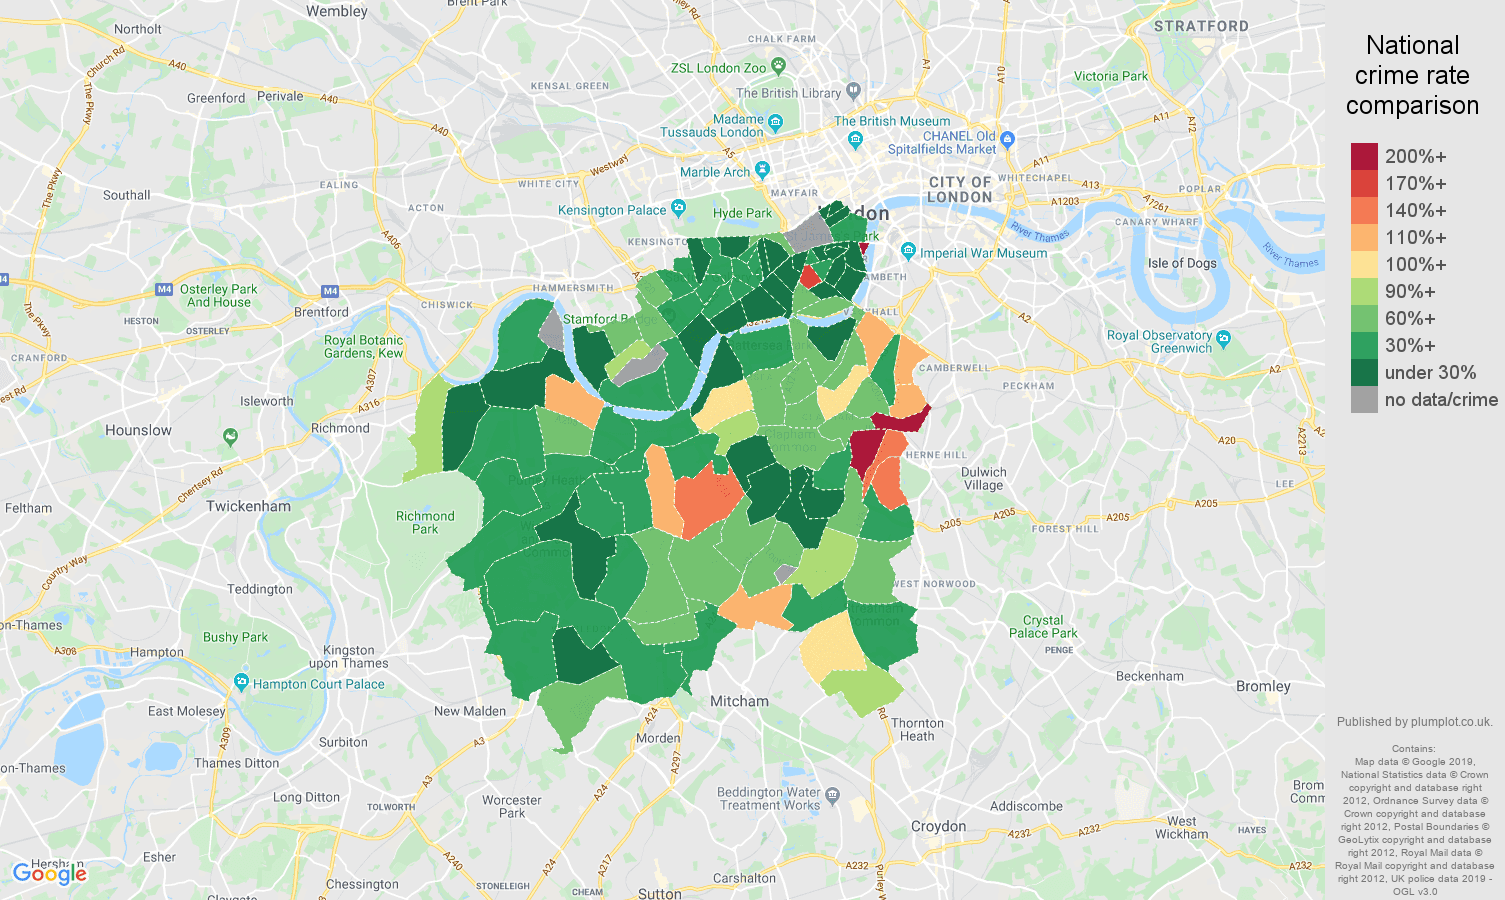 South West London other crime rate comparison map